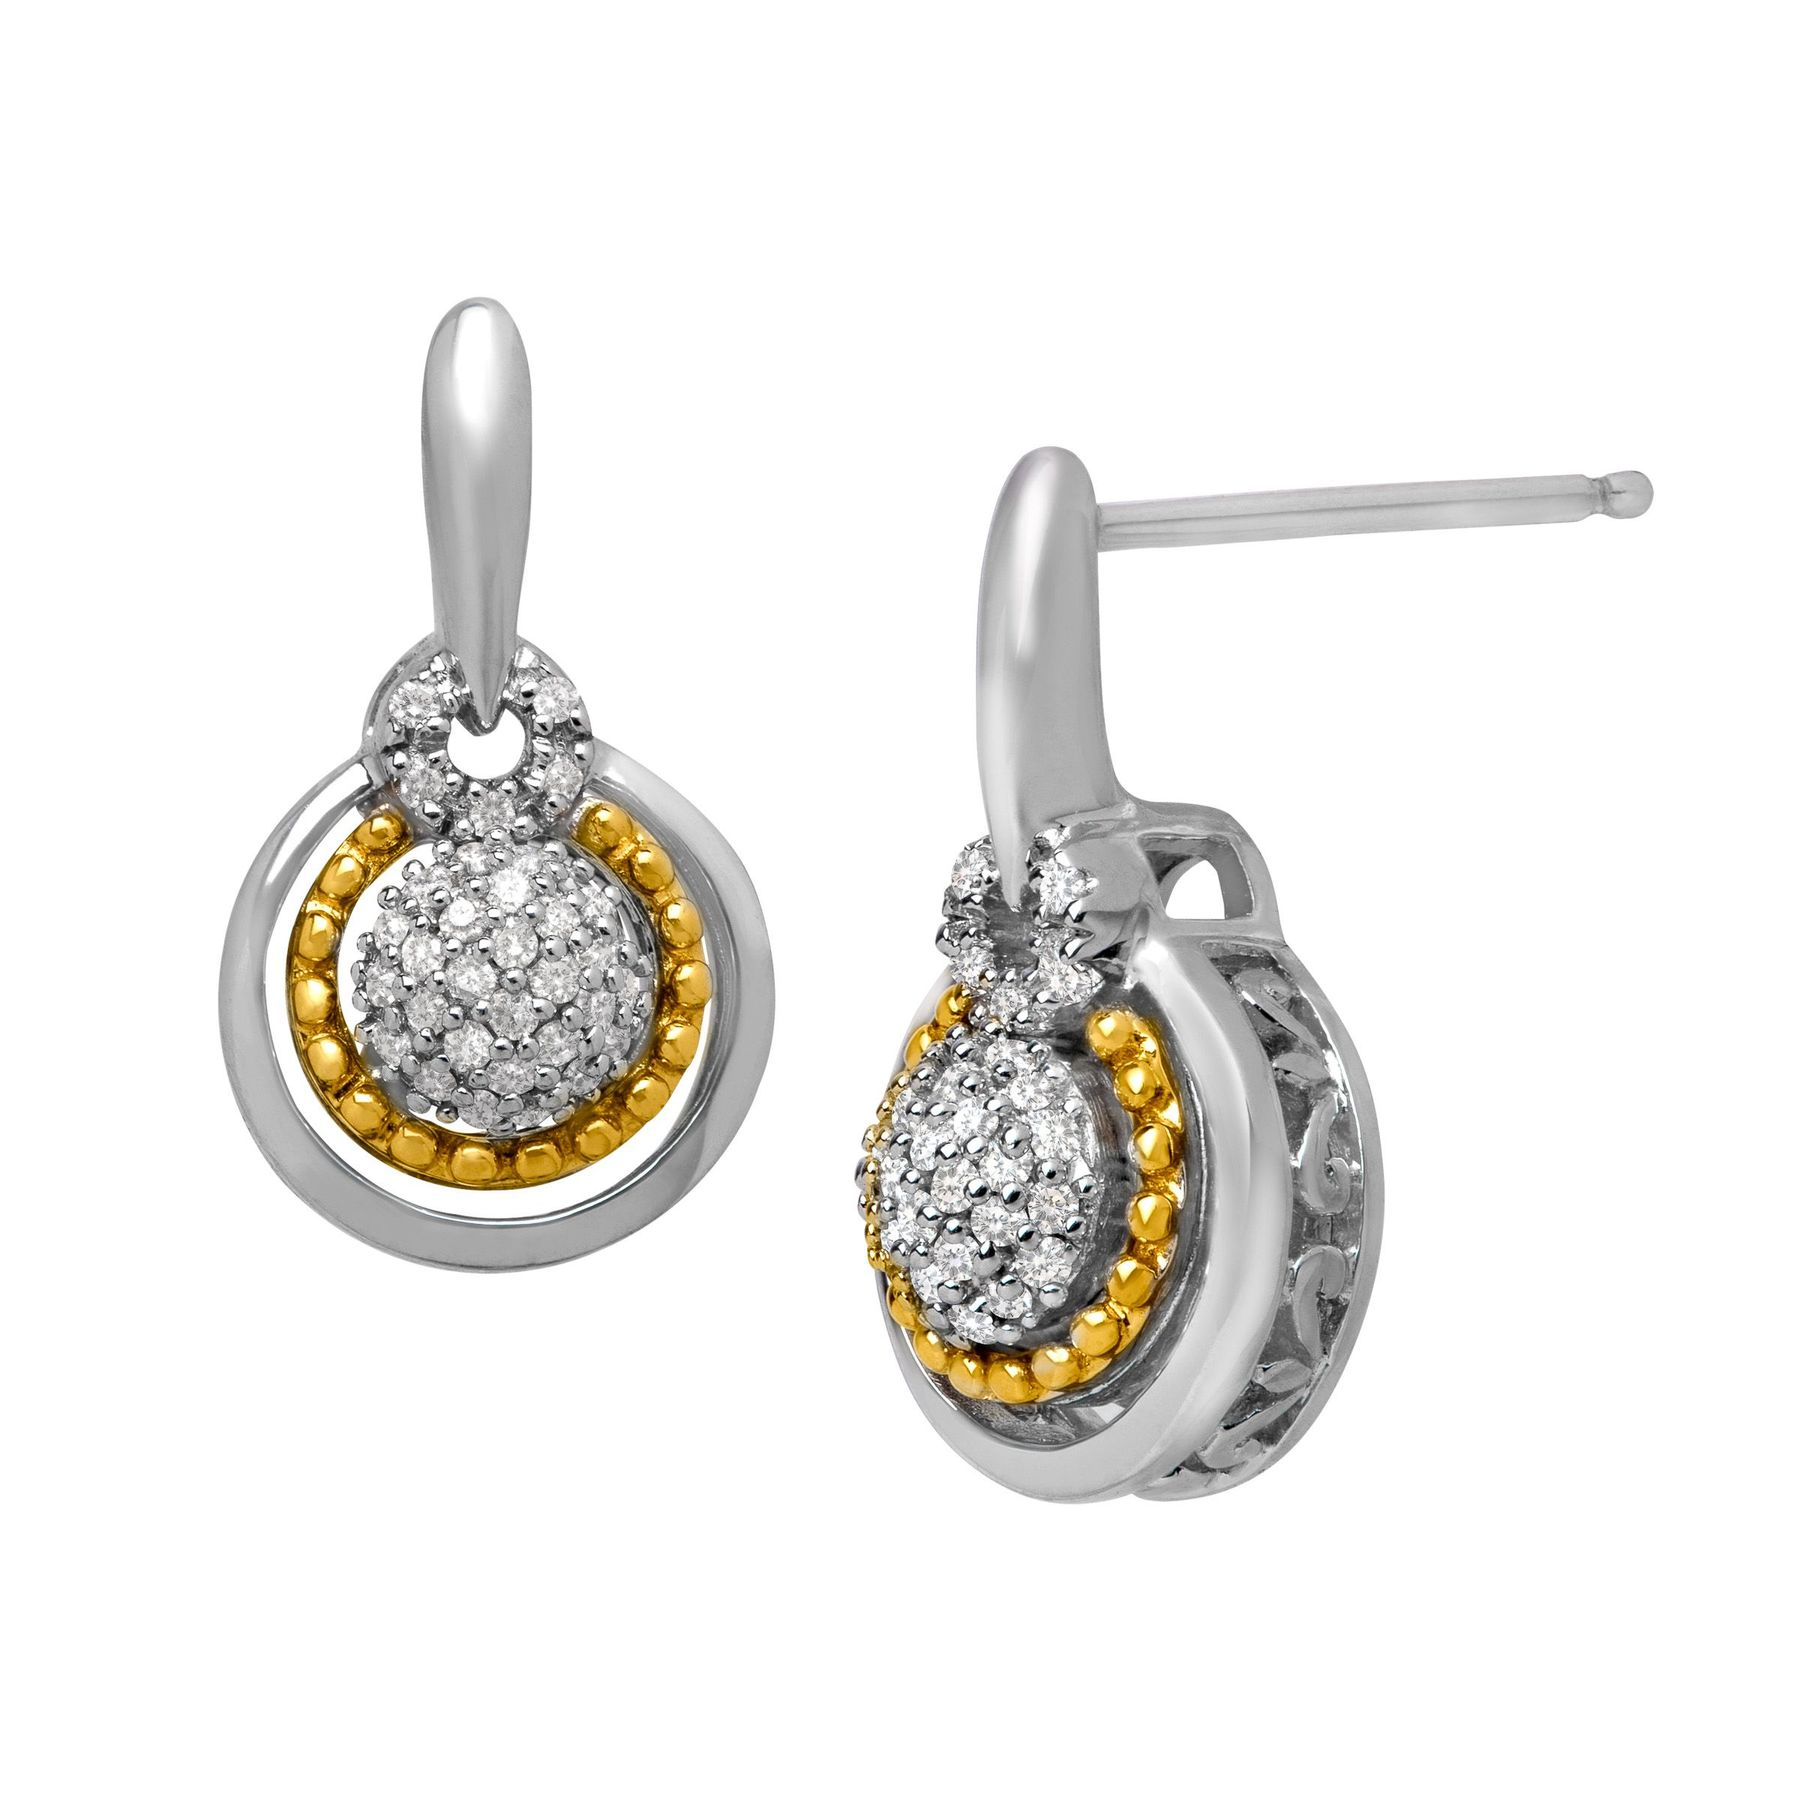 Finecraft 1/5 ct Diamond Earrings